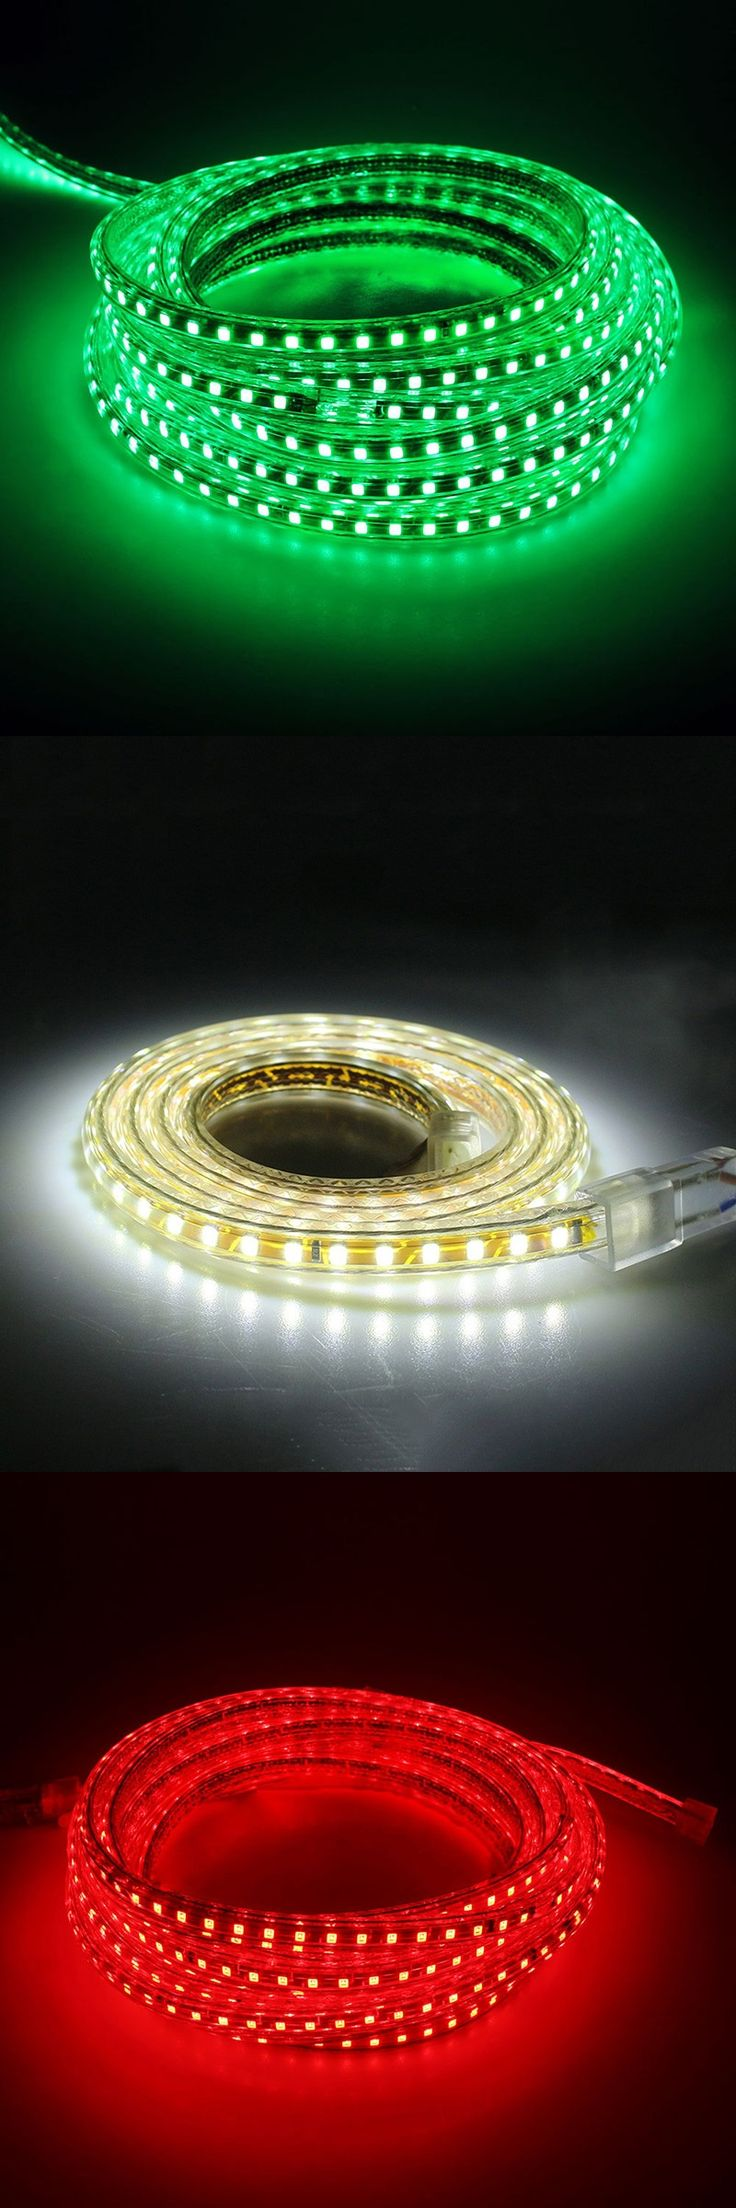 Outdoor Waterproof LED Strip 5050 AC220V Flexible LED Light  60 pcs of beads per meter warm white cold white LED Strips